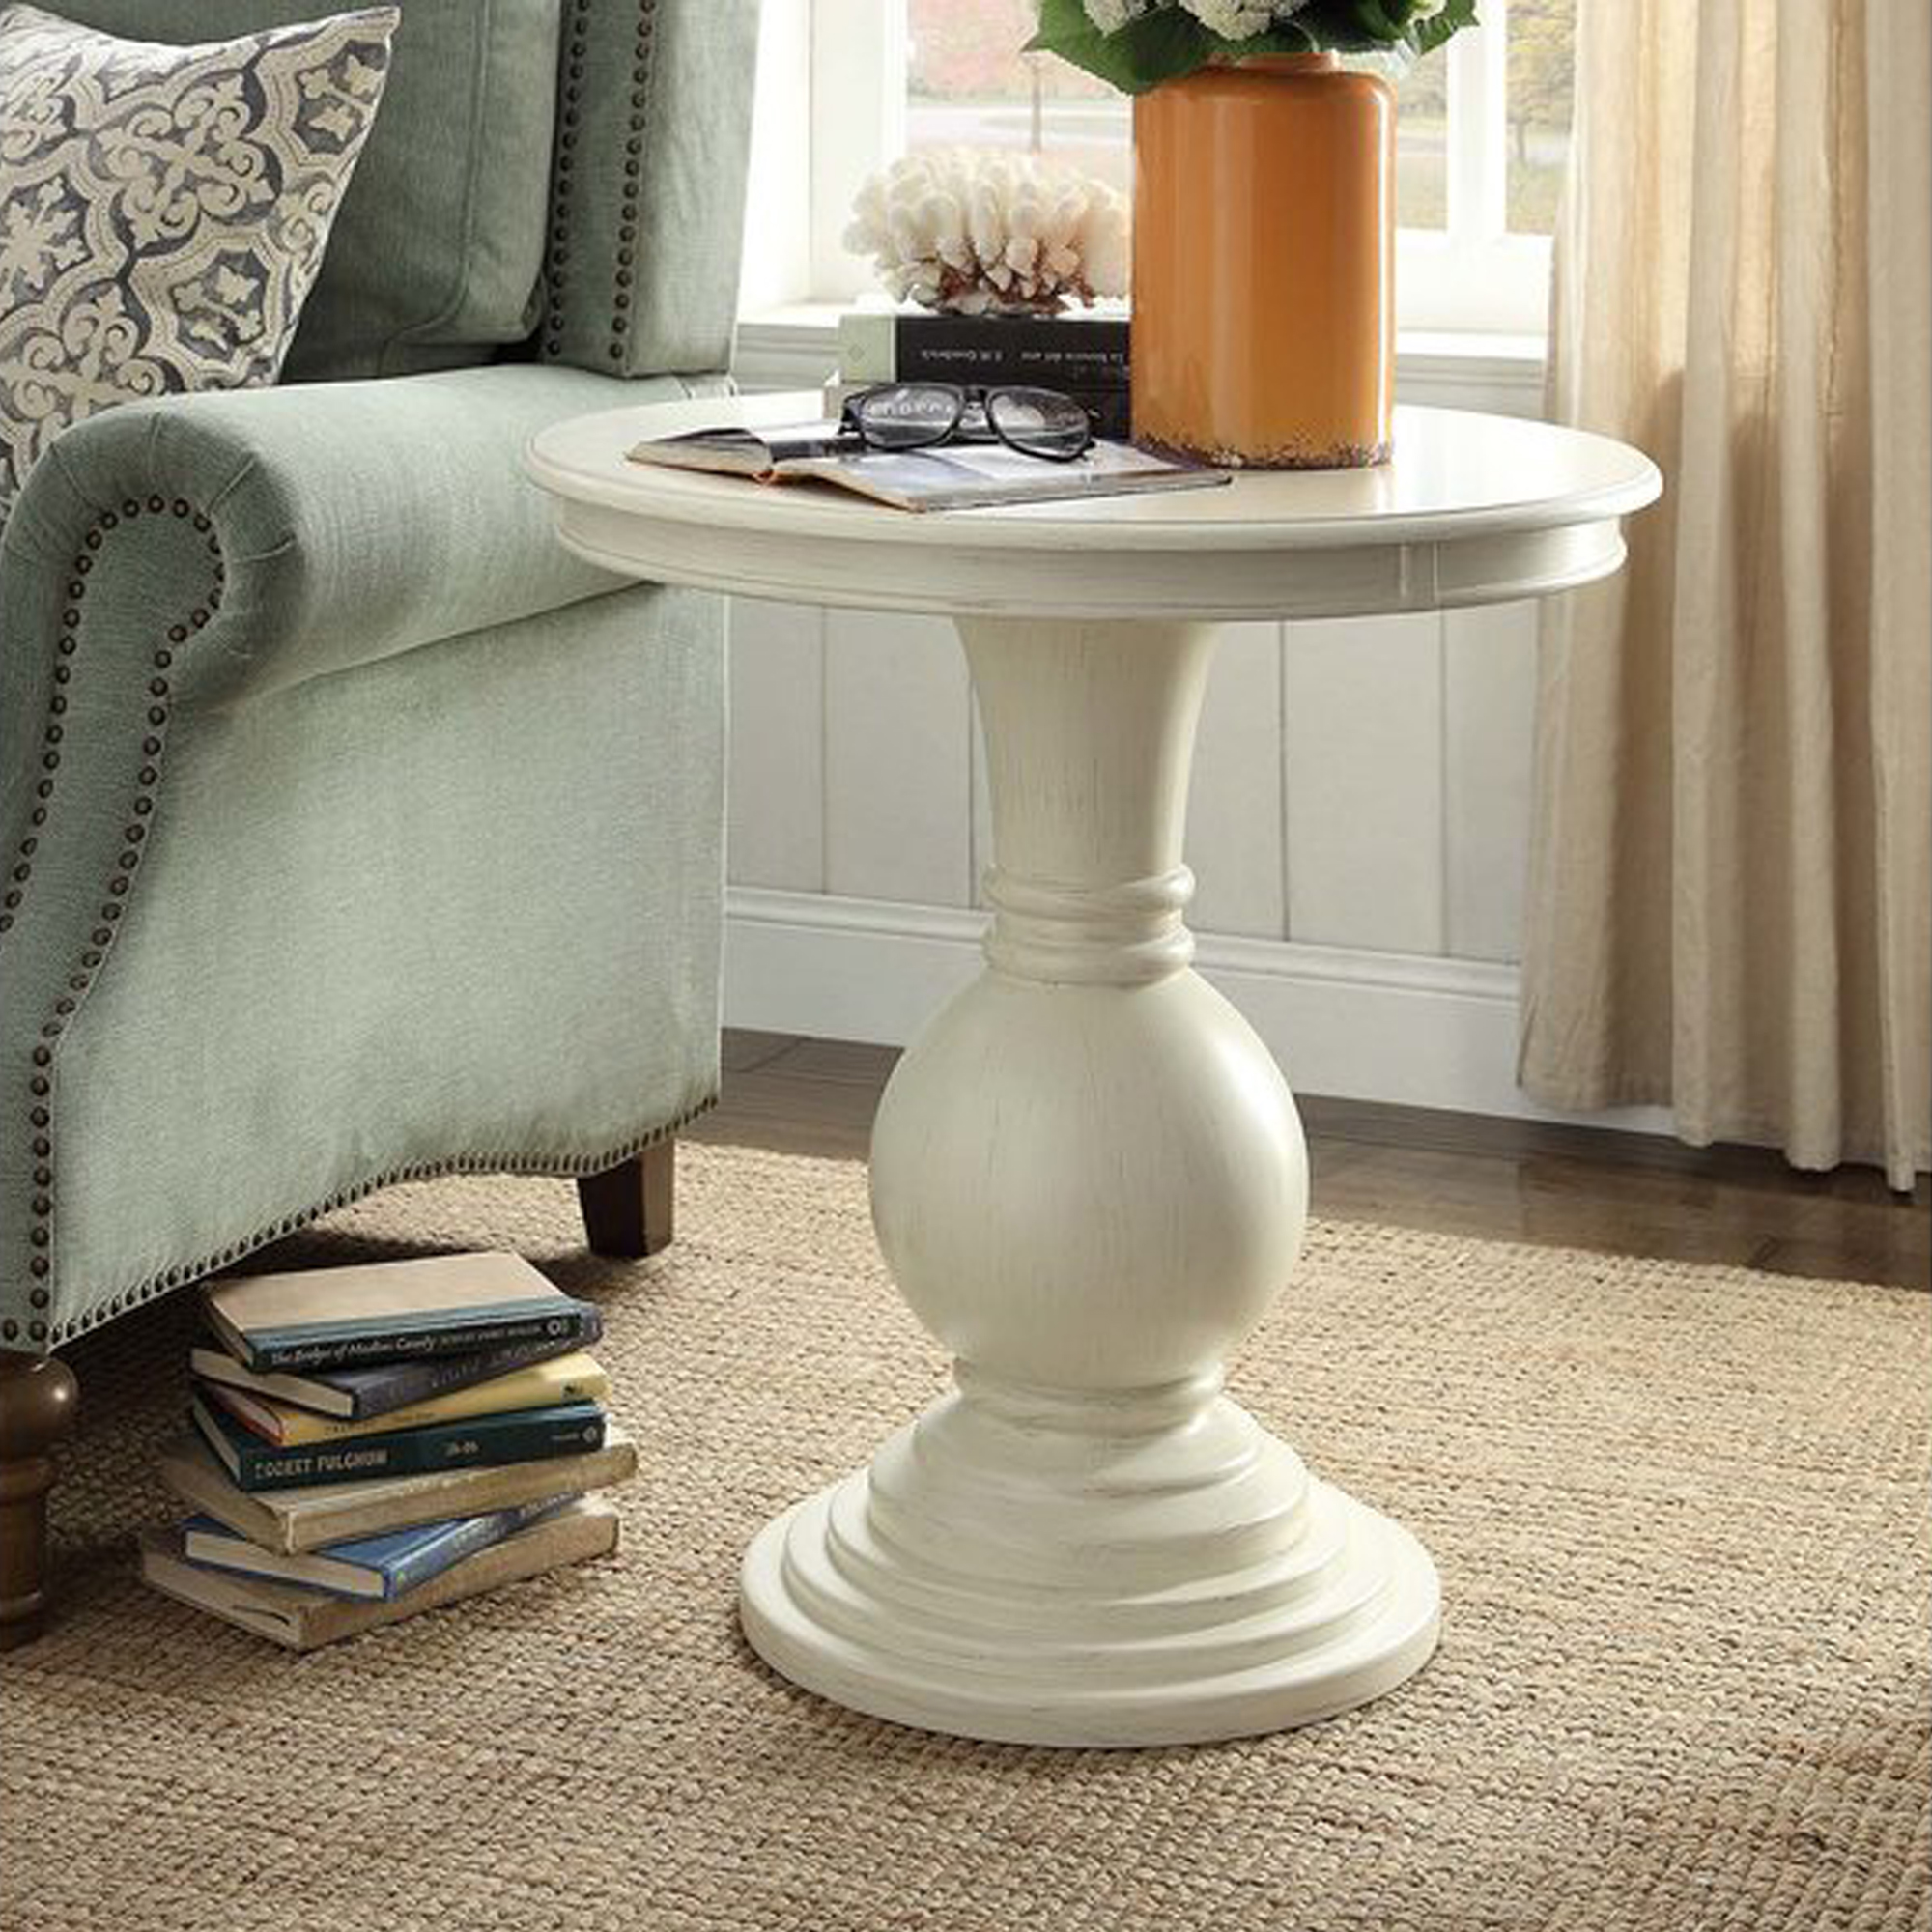 tall pedestal accent table design ideas round end tables side lamp for wrought iron small black distressed off white best accentuate your living laminate threshold ramp room and